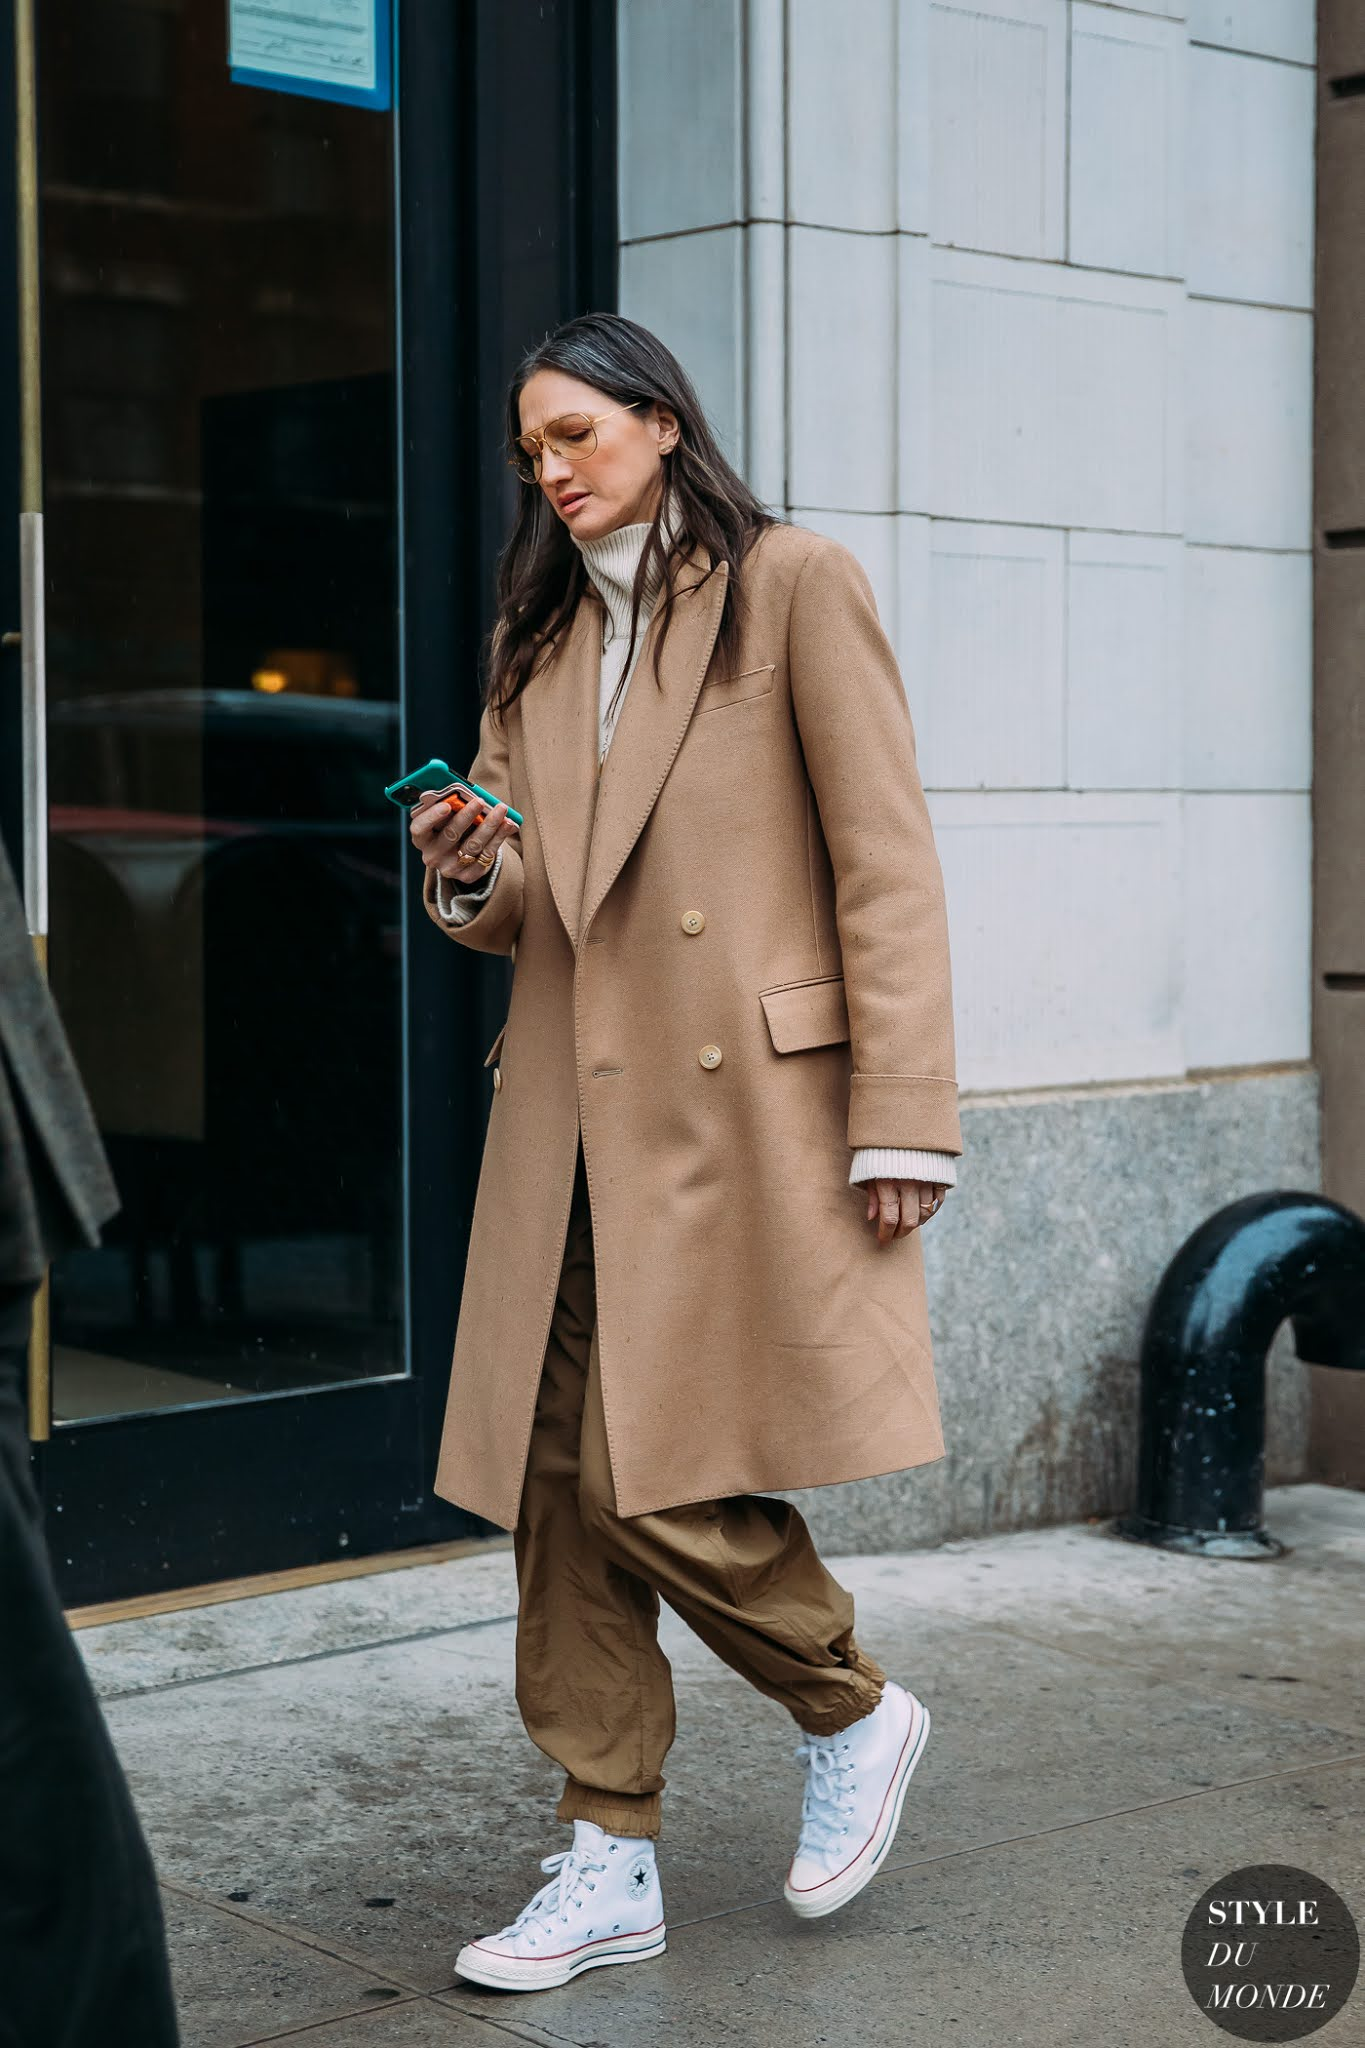 The Best Sneakers to Wear With Trousers — Jenna Lyons Street Style Outfit With Camel Coat and Converse Sneakers